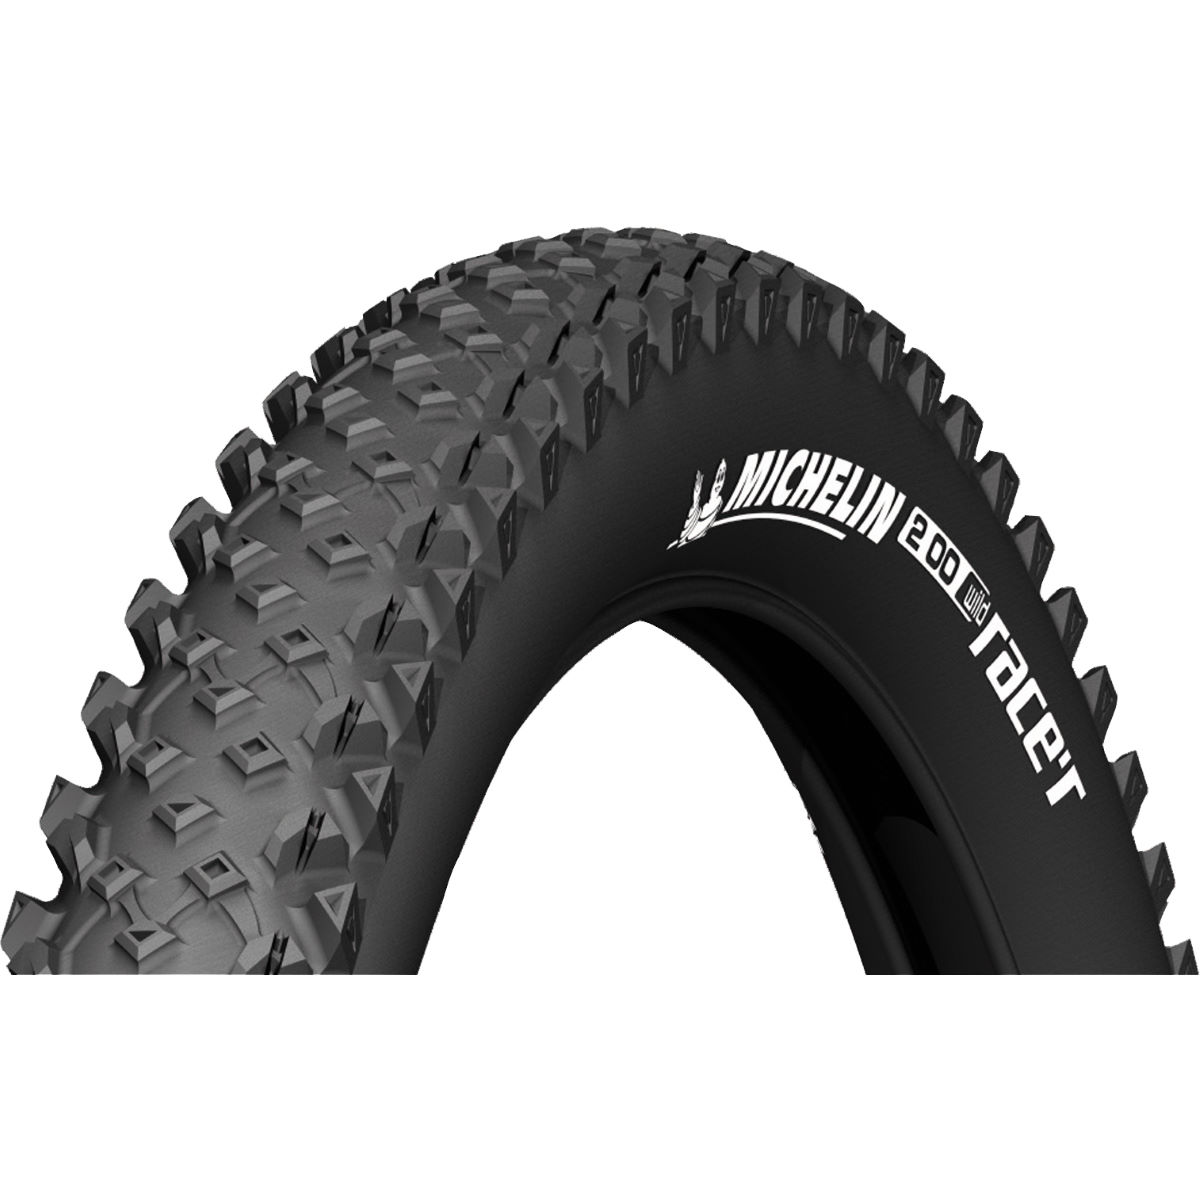 Pneu VTT Michelin Wild Race'r Advanced (souple) - 26 x 2.25 Noir Pneus VTT